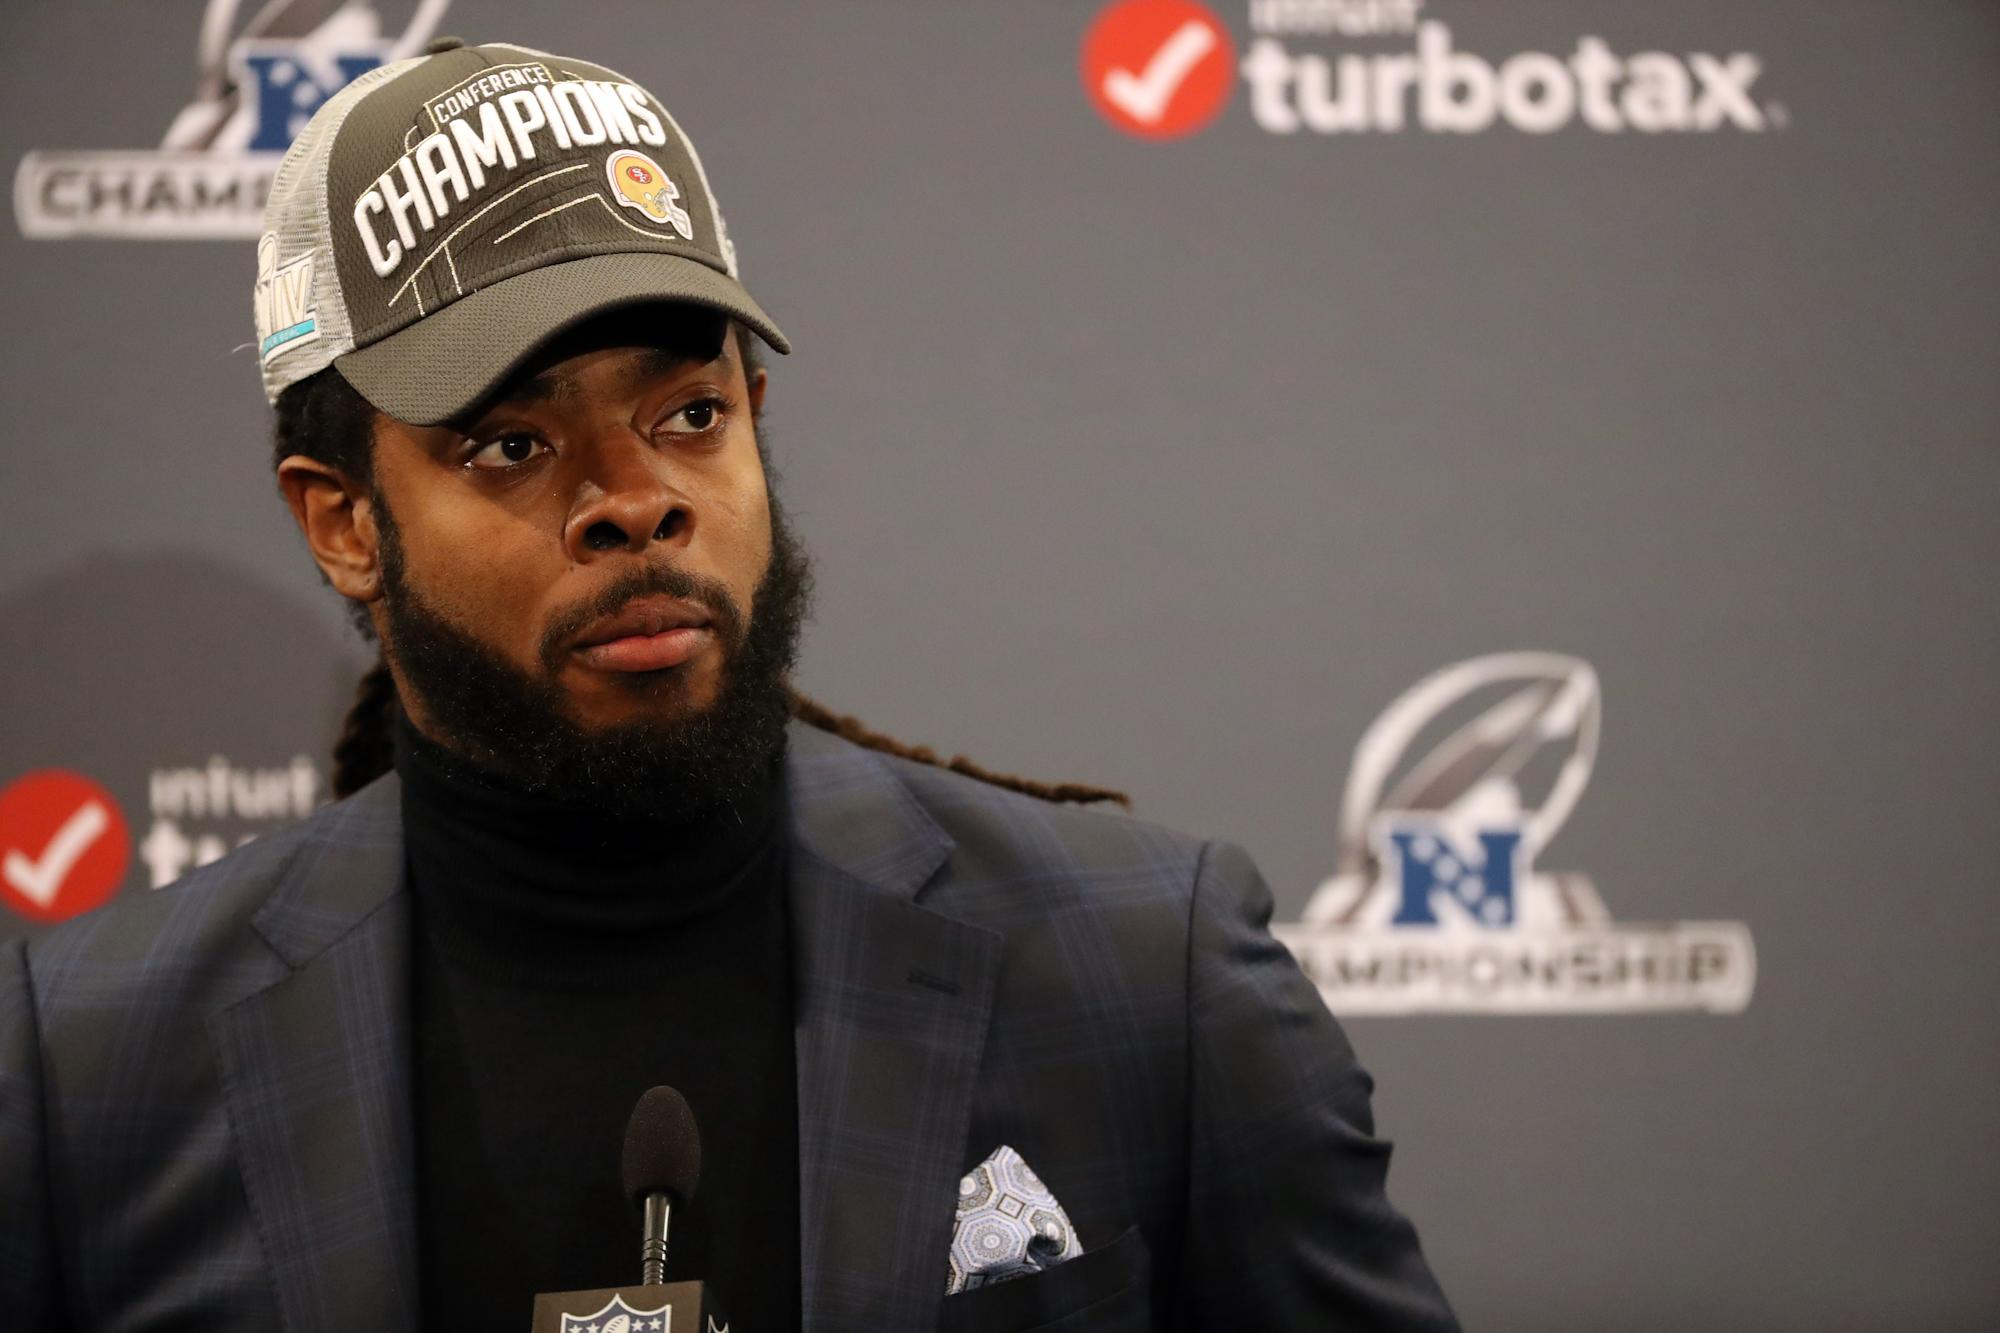 Sherman arrested, being held without bail